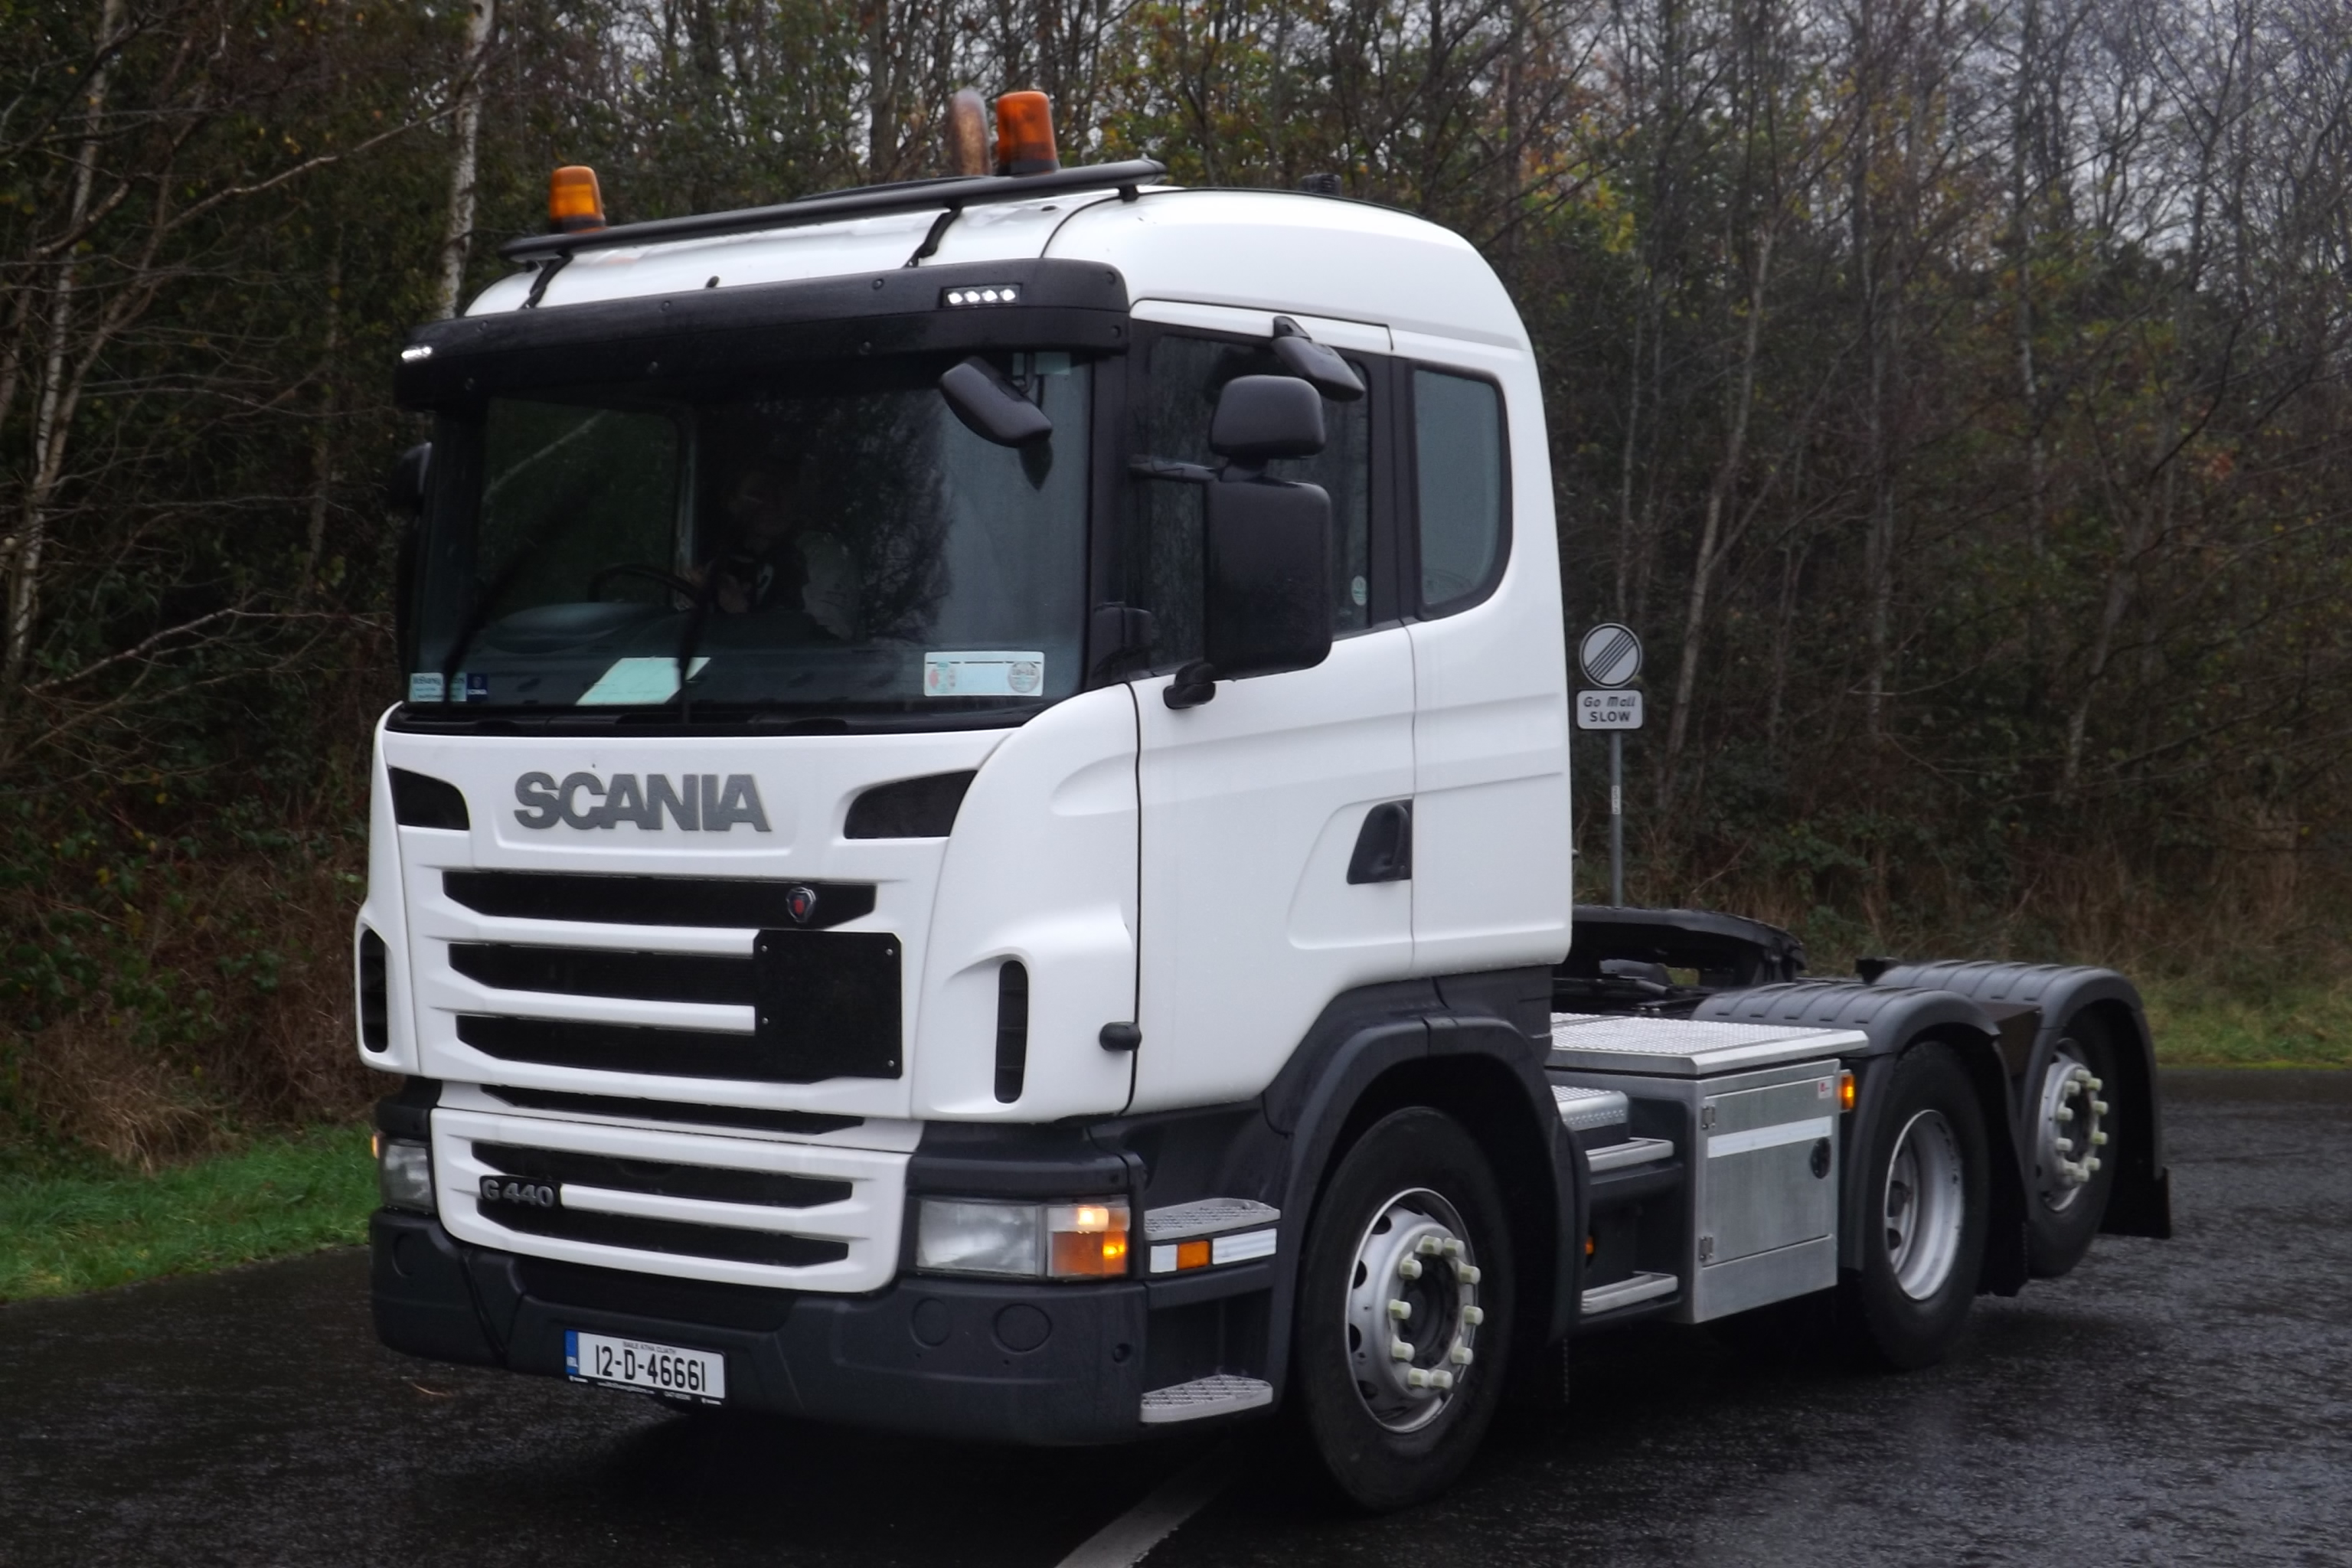 2012 Scania G440 6x2 Tag Axle Tractor Unit  Ref No: 1662 for